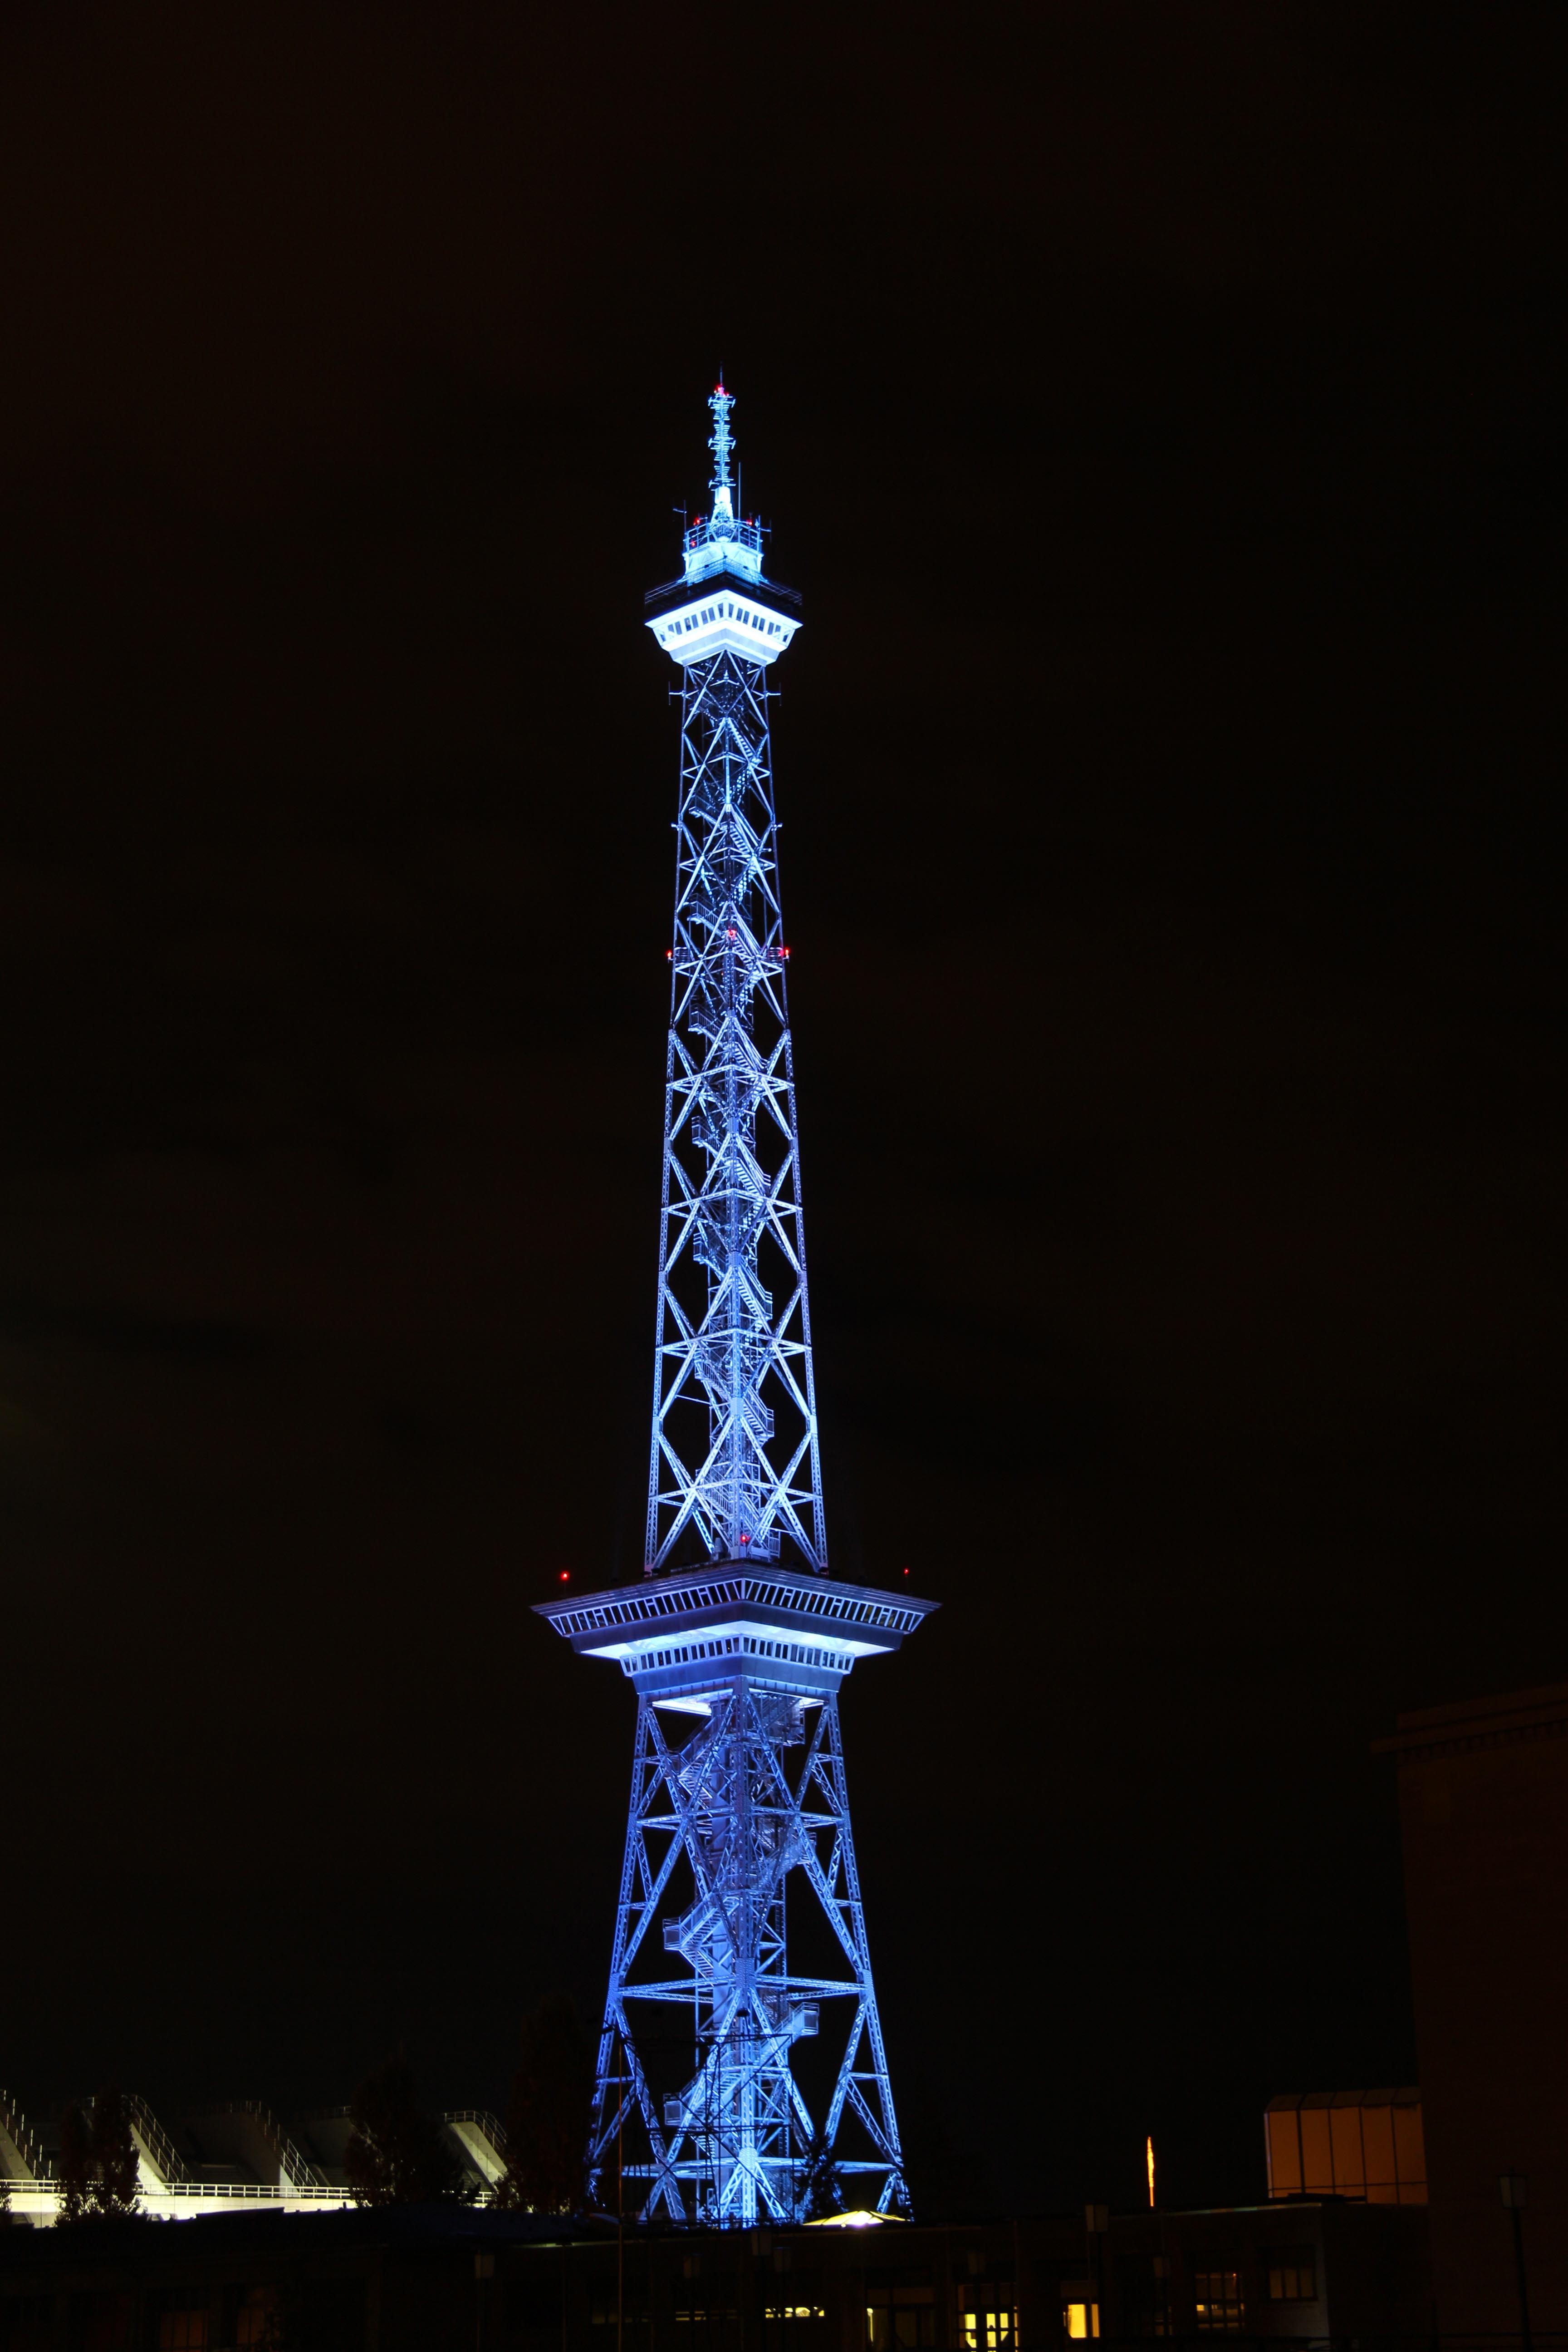 Funkturm (West Berlin TV Tower) lit up during the Festival of Lights in Berlin